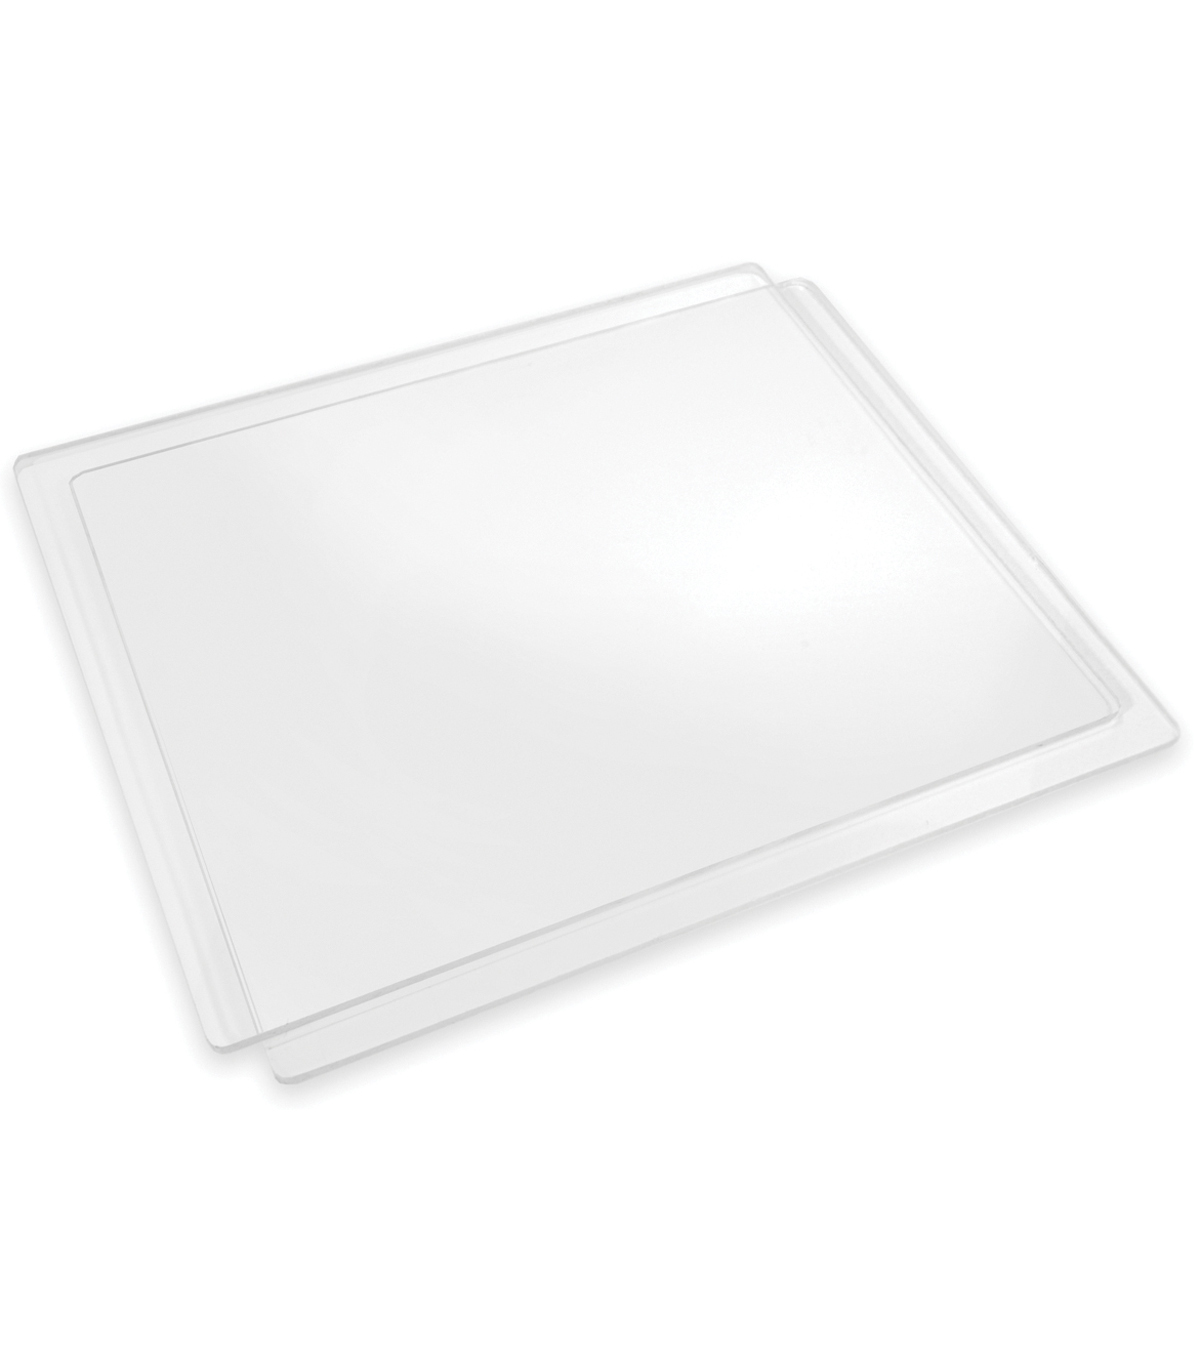 Sizzix Big Shot Pro Cutting Pads-Standard-1 Pair